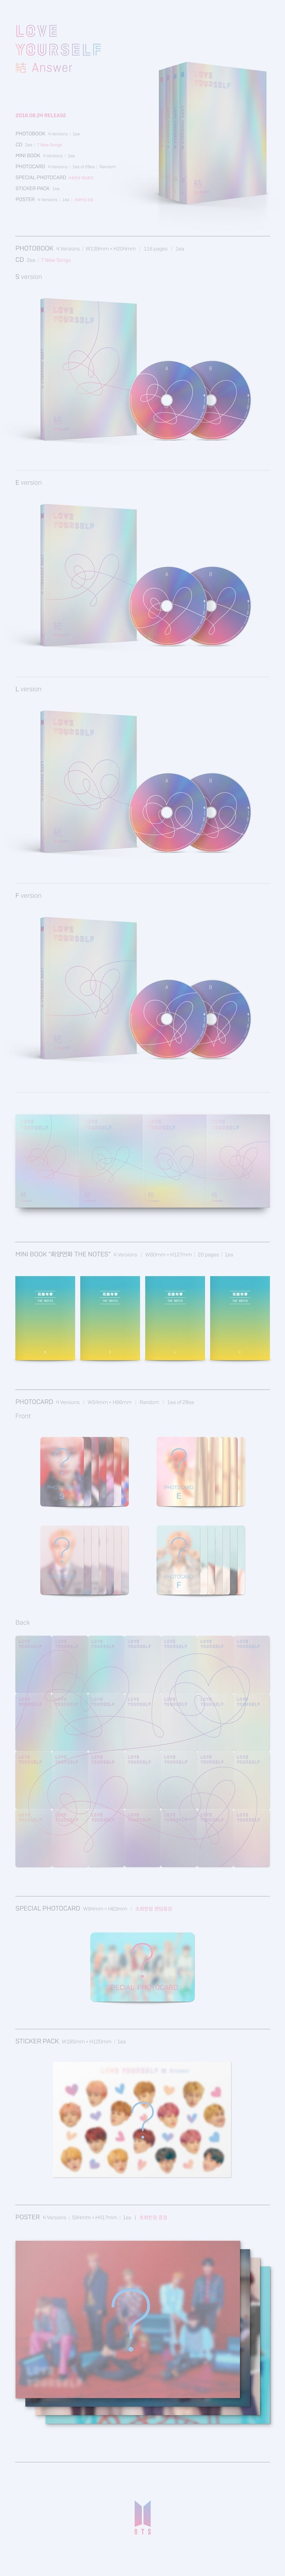 BTS LOVE YOURSELF 結 'Answer' Repackage Album